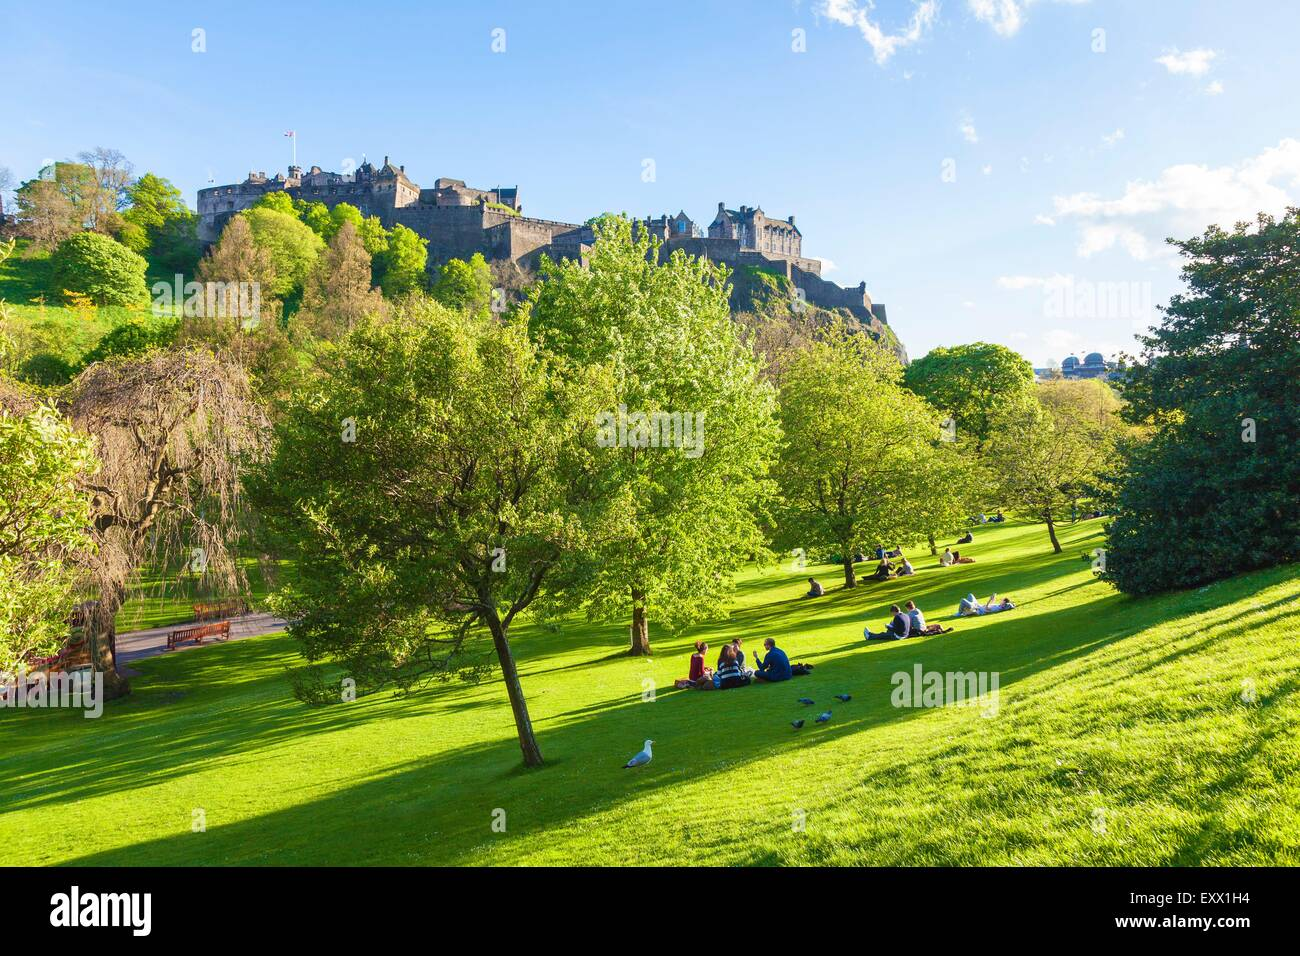 Edinburgh Castle and Princes Street Gardens, Edinburgh, Scotland, Europe - Stock Image